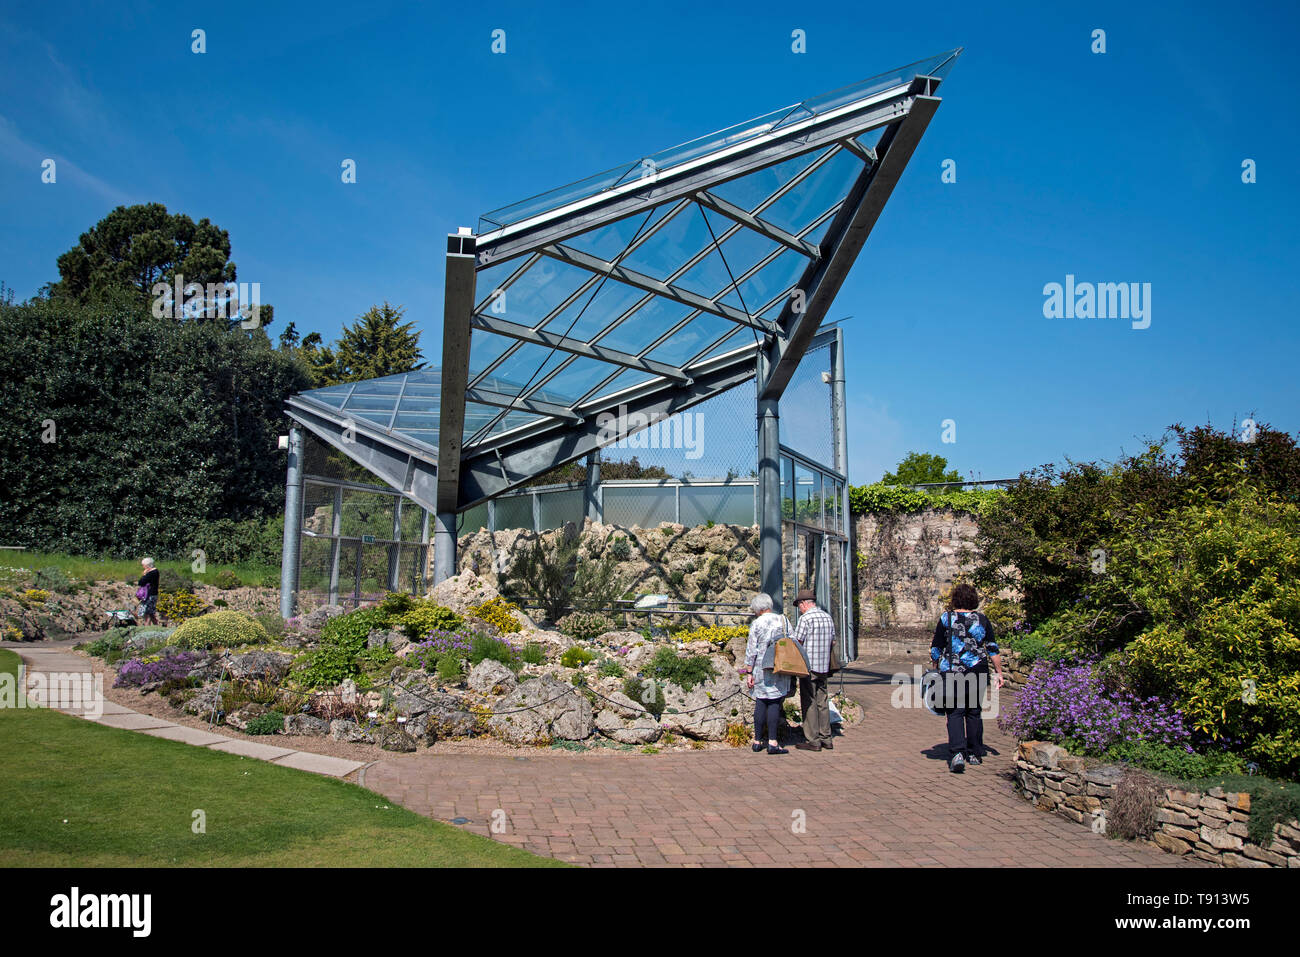 The New Alpine Glasshouse in  the Royal Botanic Garden Edinburgh (RBGE) , Scotland, UK. - Stock Image